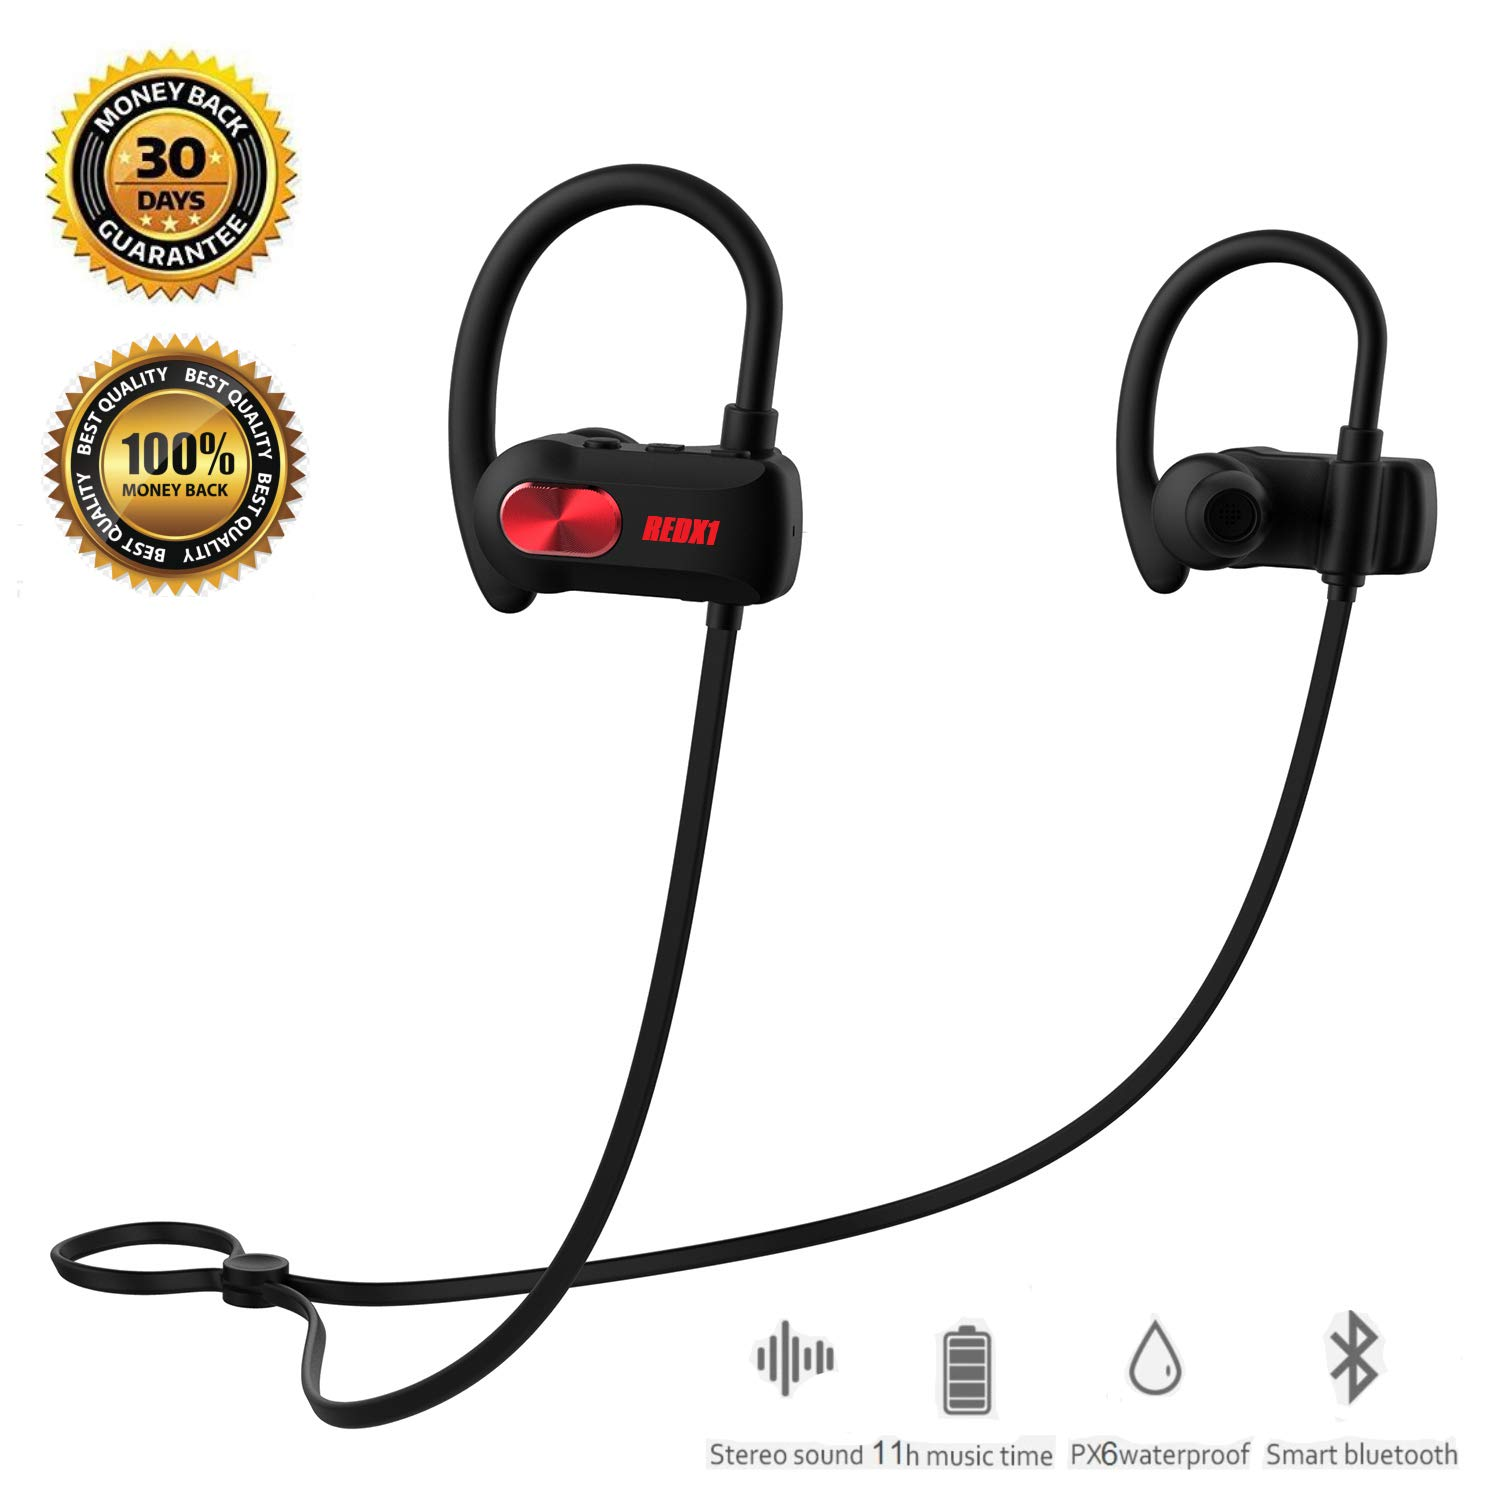 REDX1 Bluetooth Headphones, Best Wireless Sports Earphones w Mic IPX6 Waterproof HD Stereo Sweatproof Earbuds for Gym Running Workout 11 Hour Battery Noise Cancelling Headsets